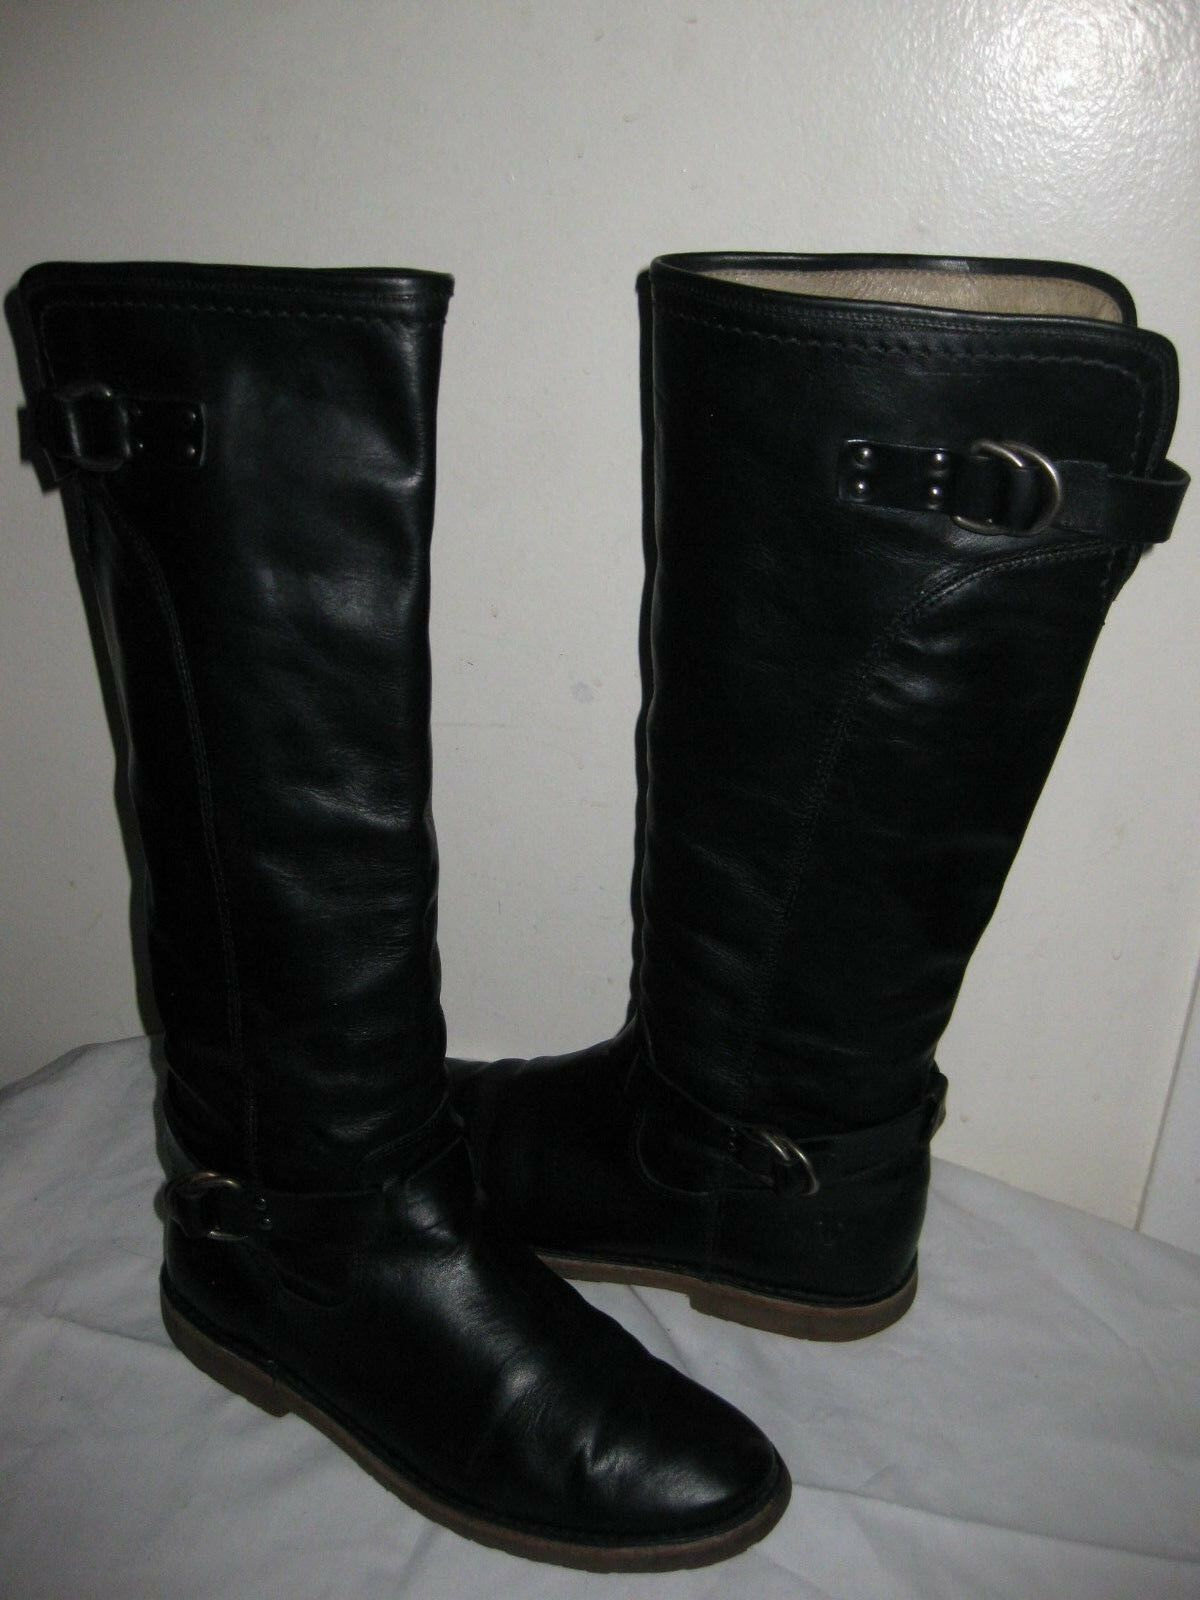 Frye Celia D boot Leather shoes Size 7.5 B